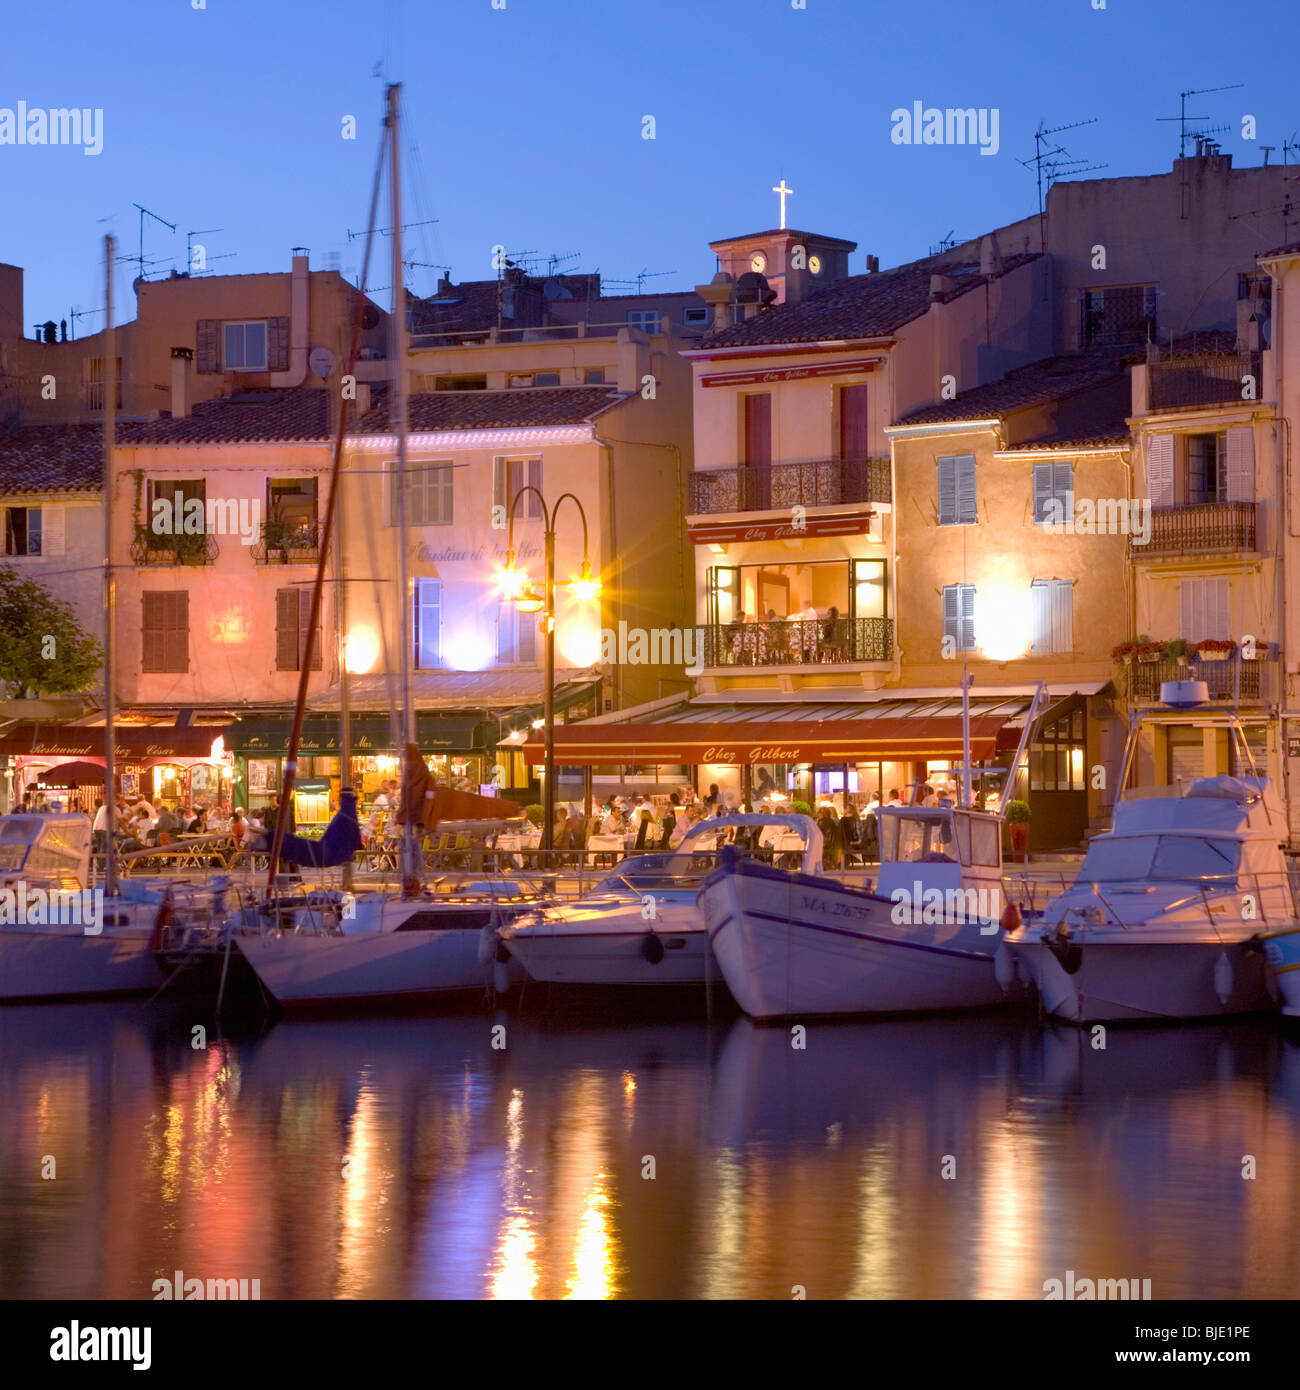 Cassis, Provence, France. View across the illuminated harbour at dusk. - Stock Image